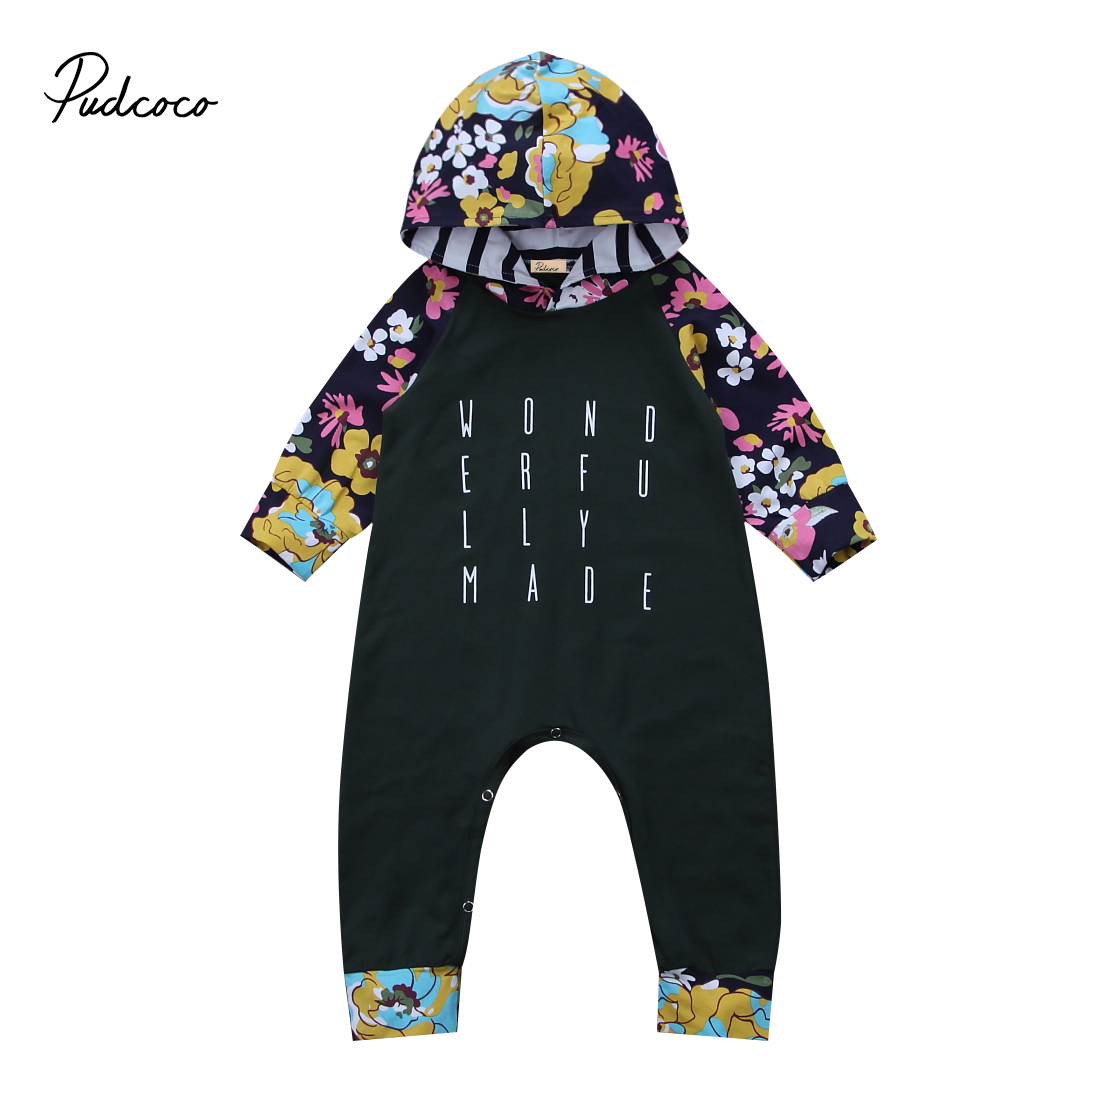 Cotton Newborn Baby Floral Romper Autumn Long Sleeve Warm Hooded Jumpsuit Boys Girls Clothes autumn baby clothes baby jumpsuit boys and girls romper cotton knitted long sleeved sweater